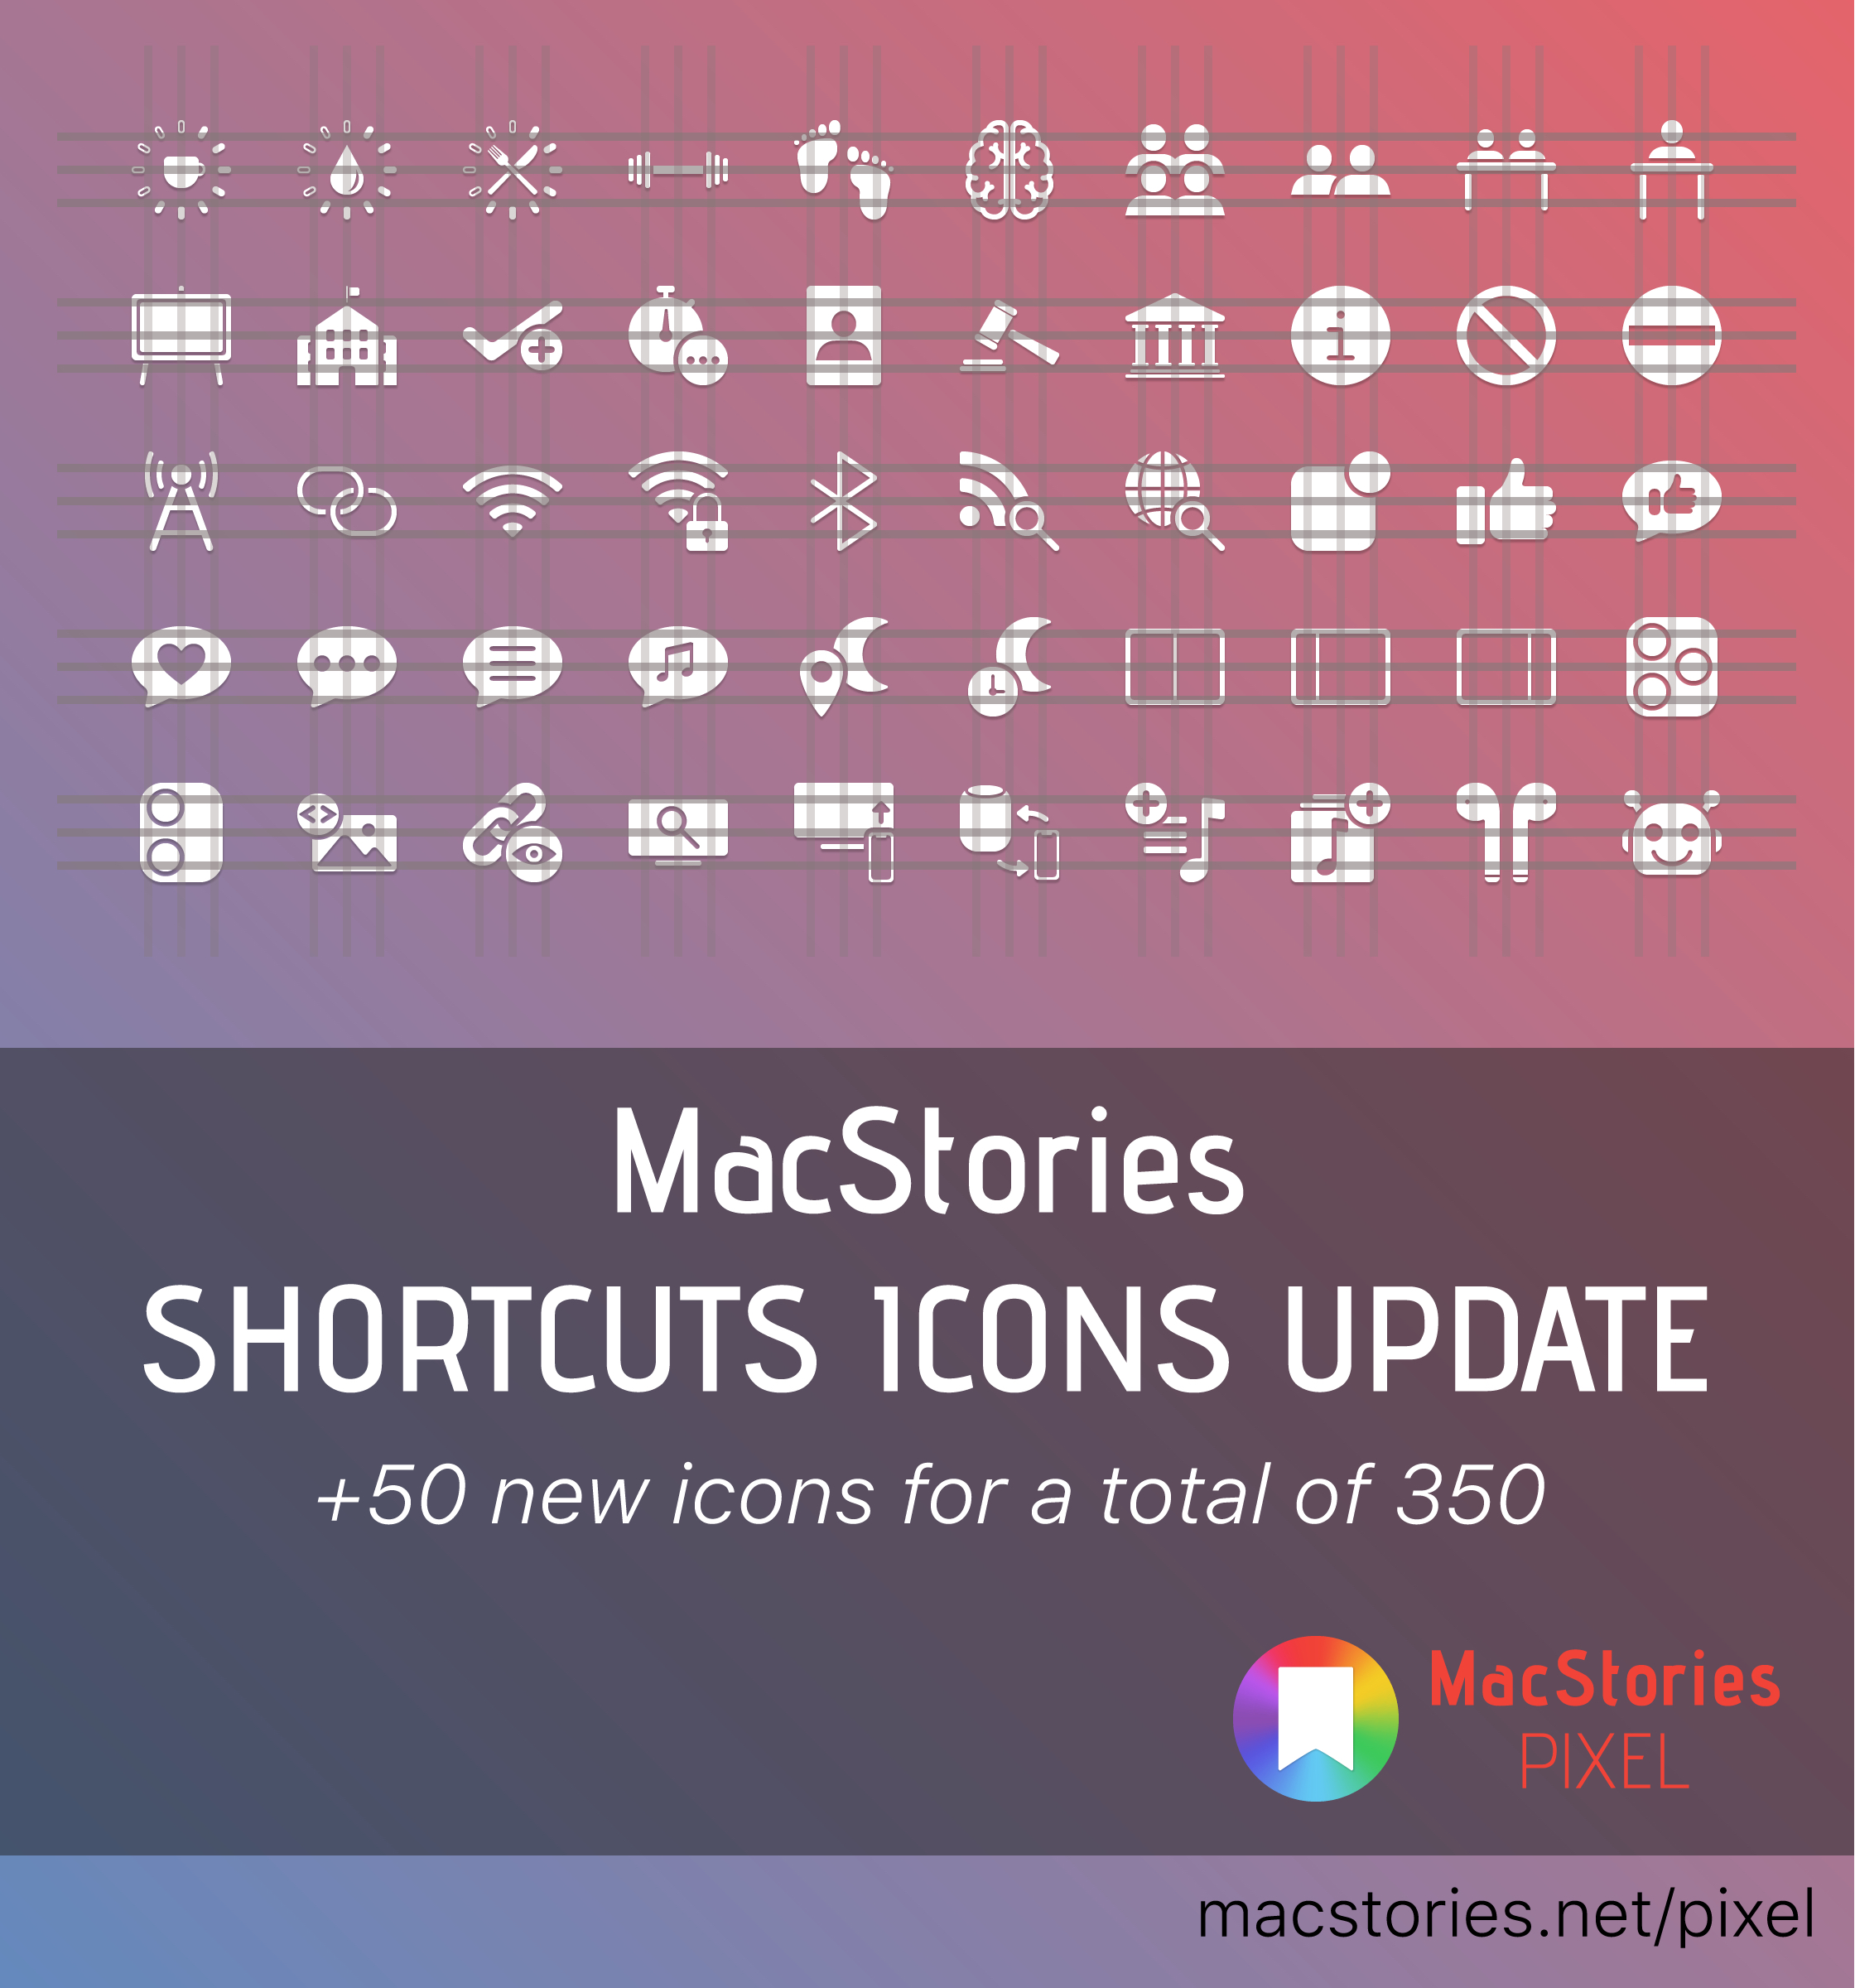 MacStories Shortcuts Icons Receives Free Update with 50 New Glyphs